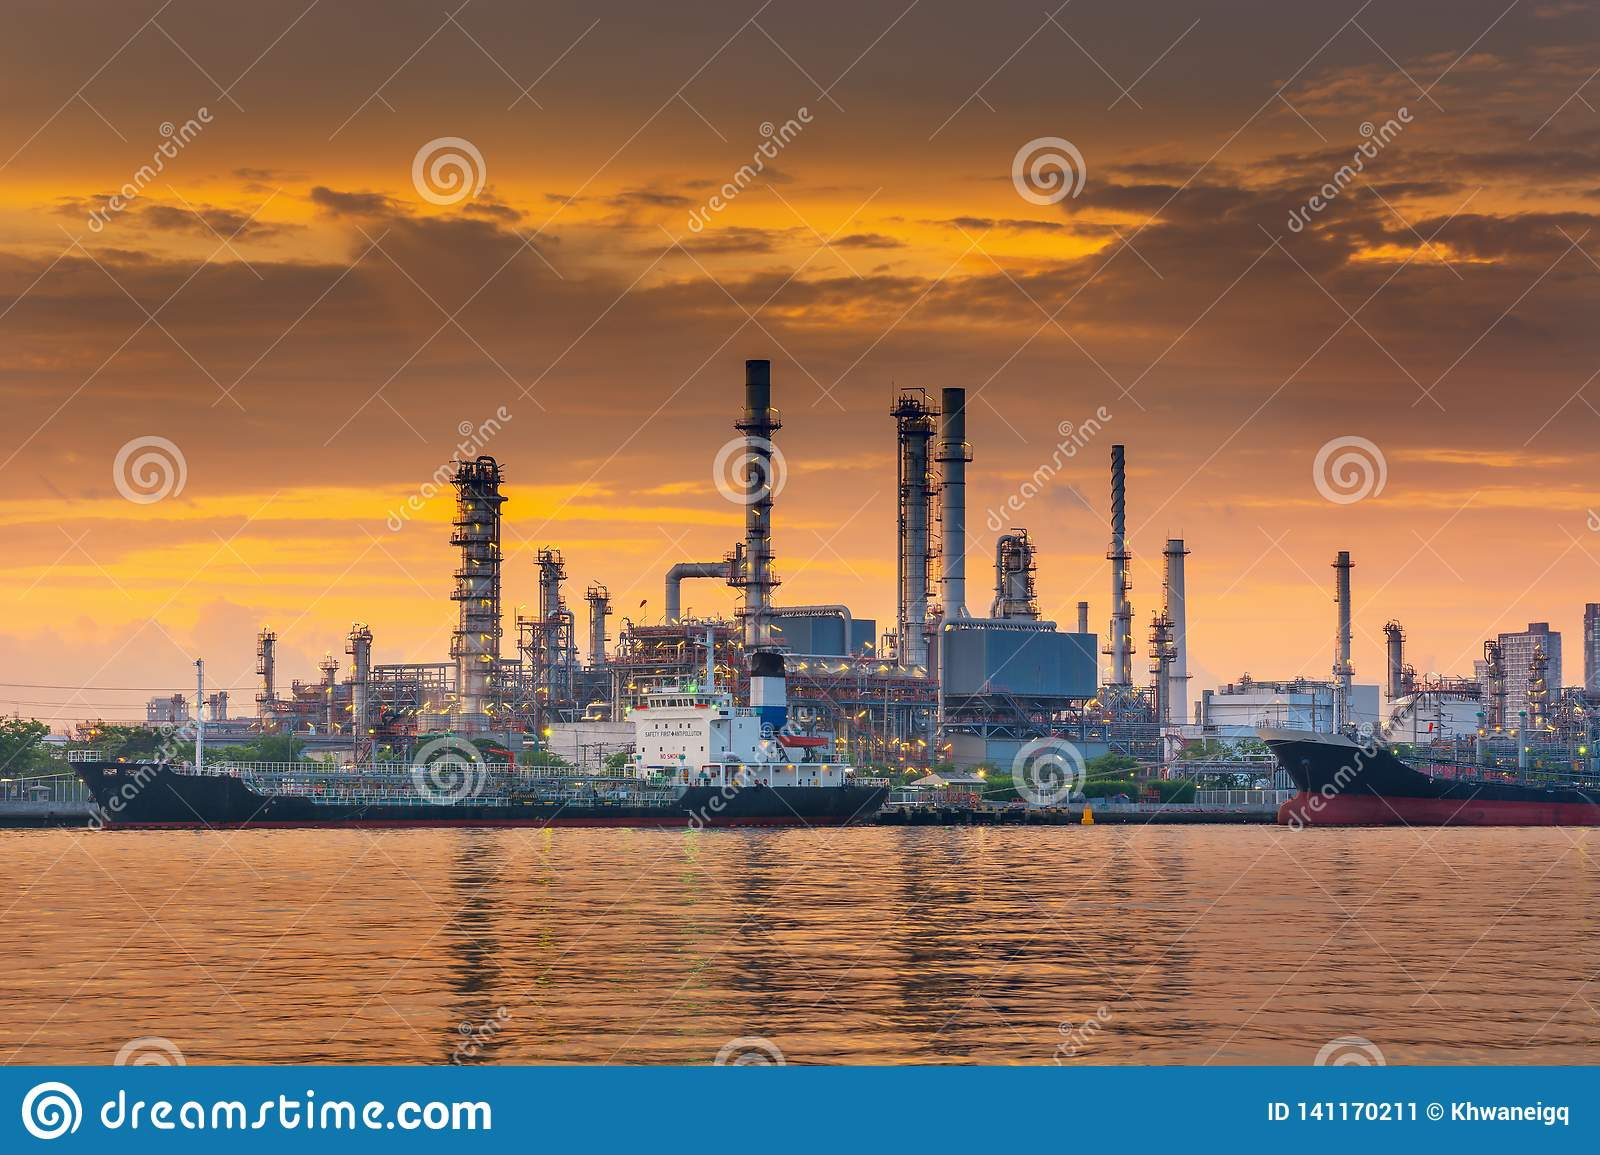 Landscape of Oil and Gas Refinery Manufacturing Plant., Shipping Dock and Chemical Distillation Process Buildings., Factory of